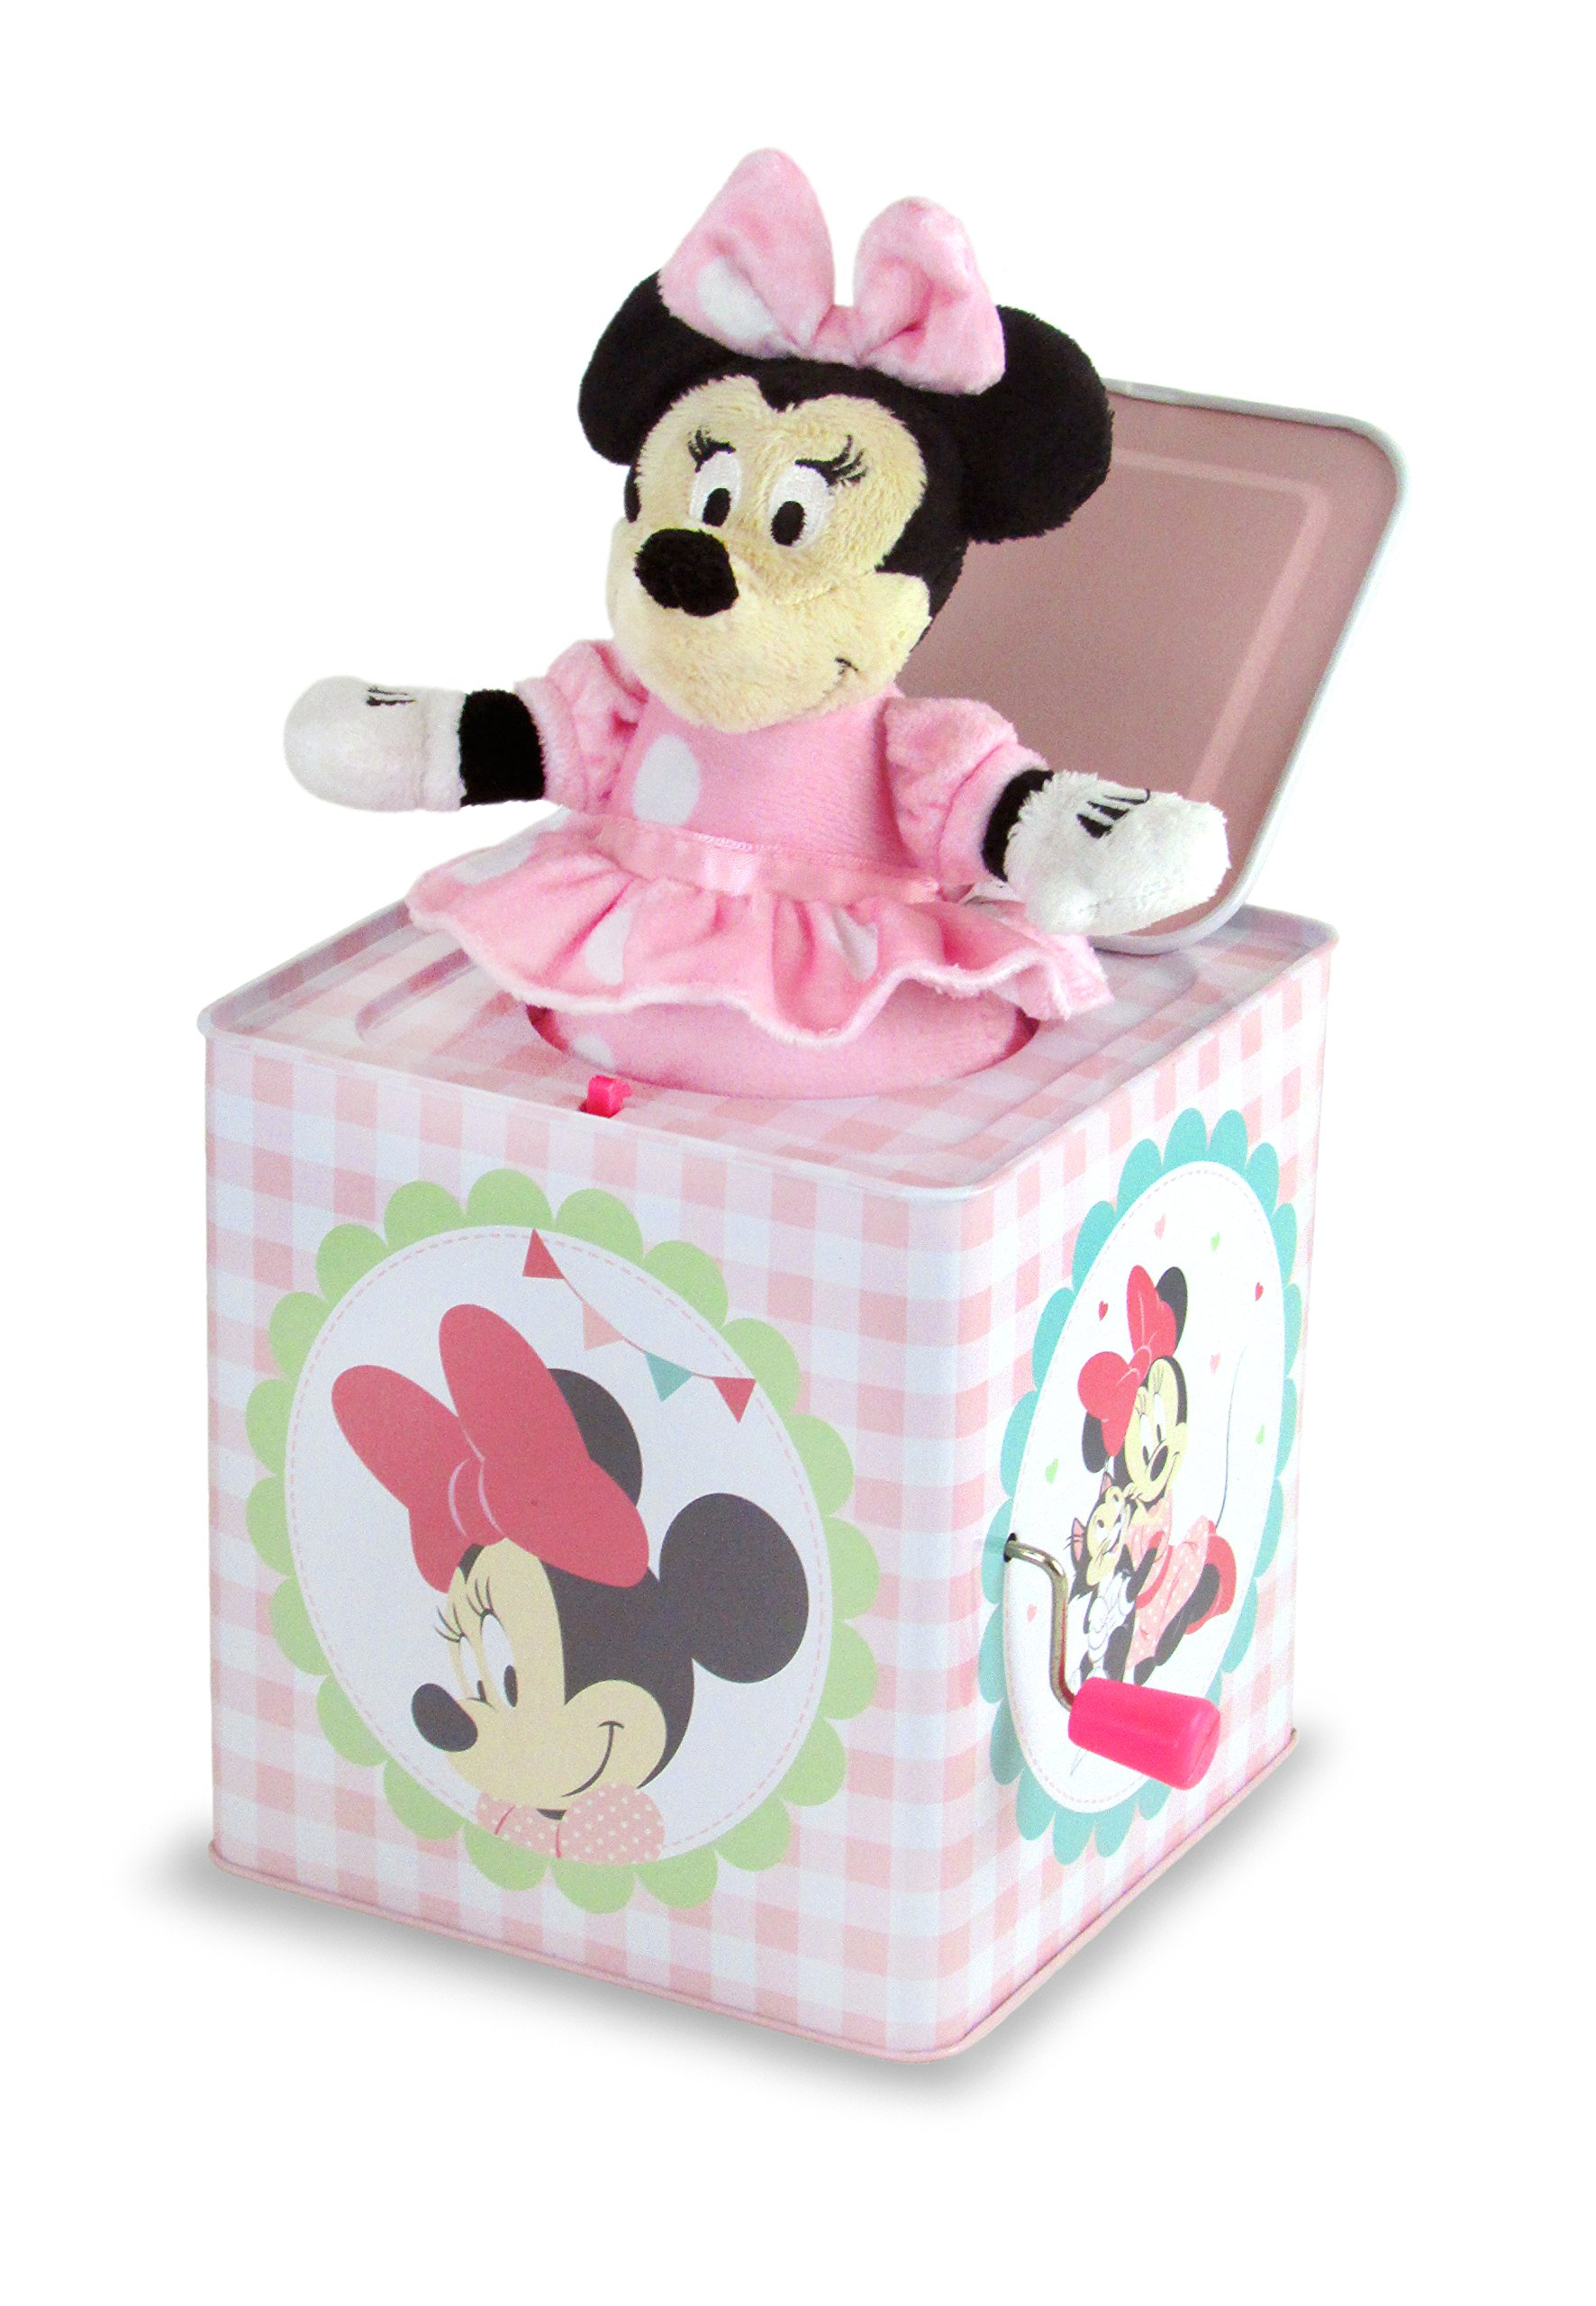 Disney Baby Minnie Mouse Jack-in-the-Box, 6.25''